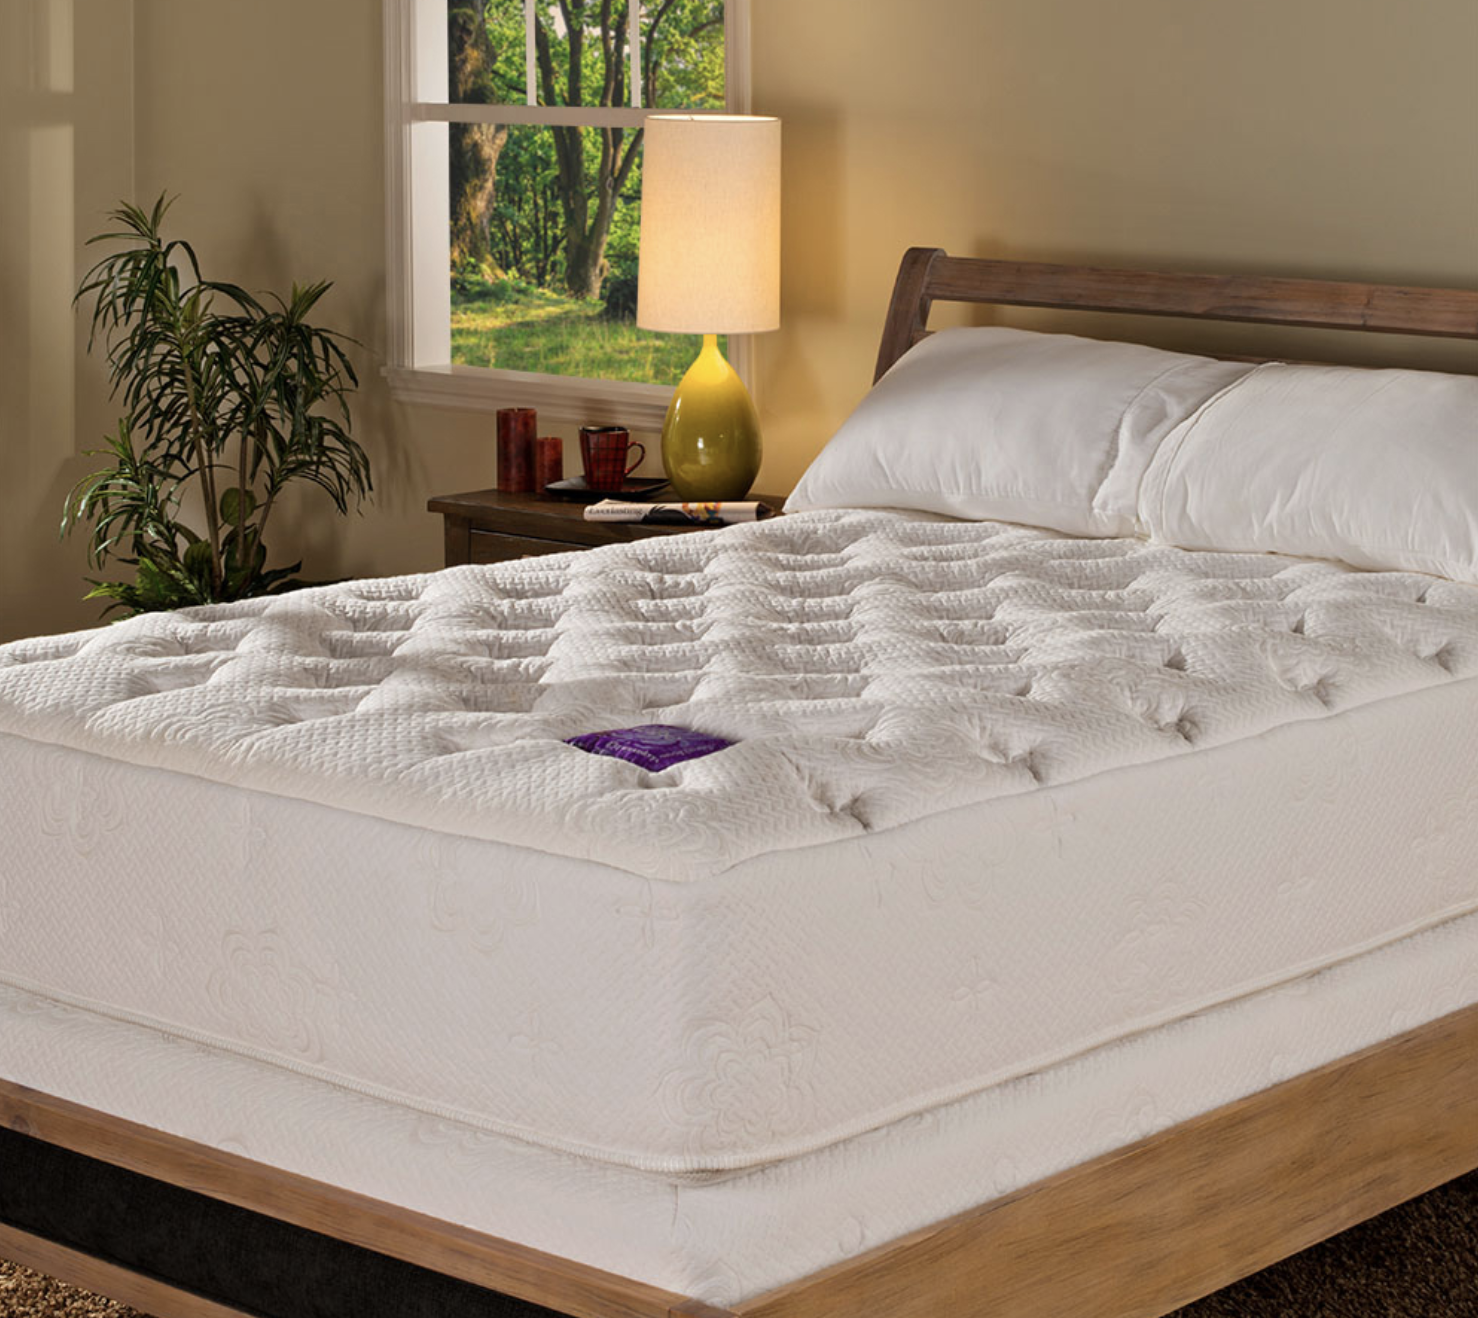 City Mattress – Natural Vita Talalay Latex Mattress Store In Fort Myers Florida